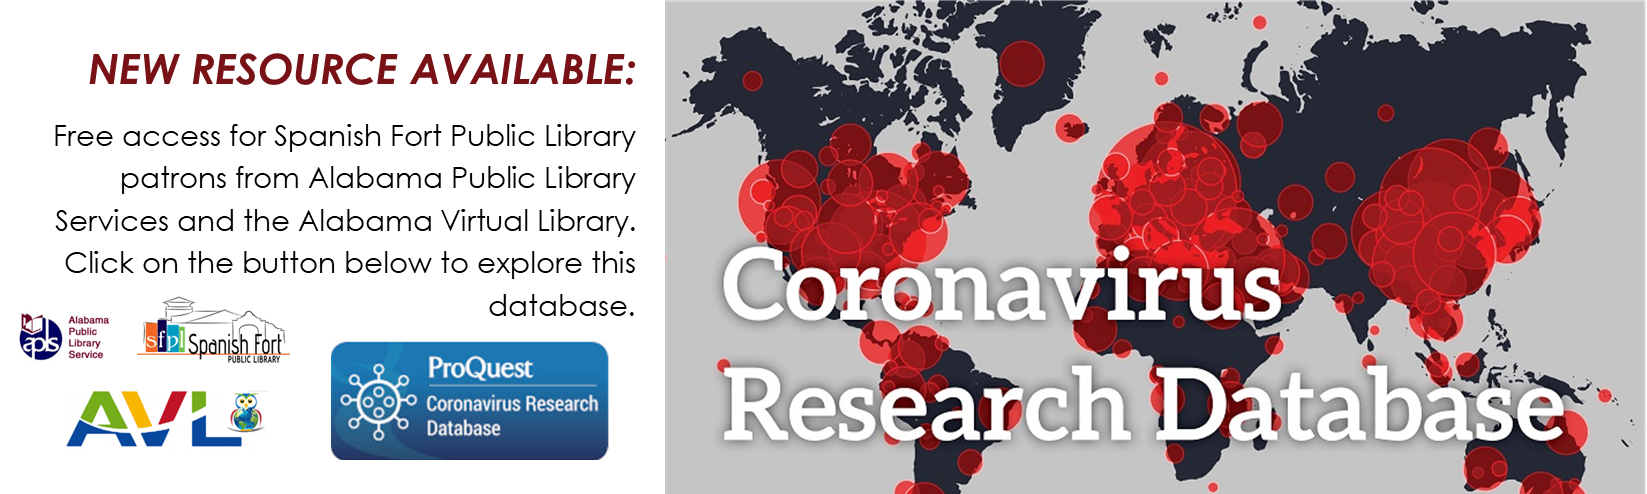 New Coronavirus Research Database available free to Spanish Fort Public Library patrons from Alabama Public Library Services and Alabama Virtual Library. Click to explore this database